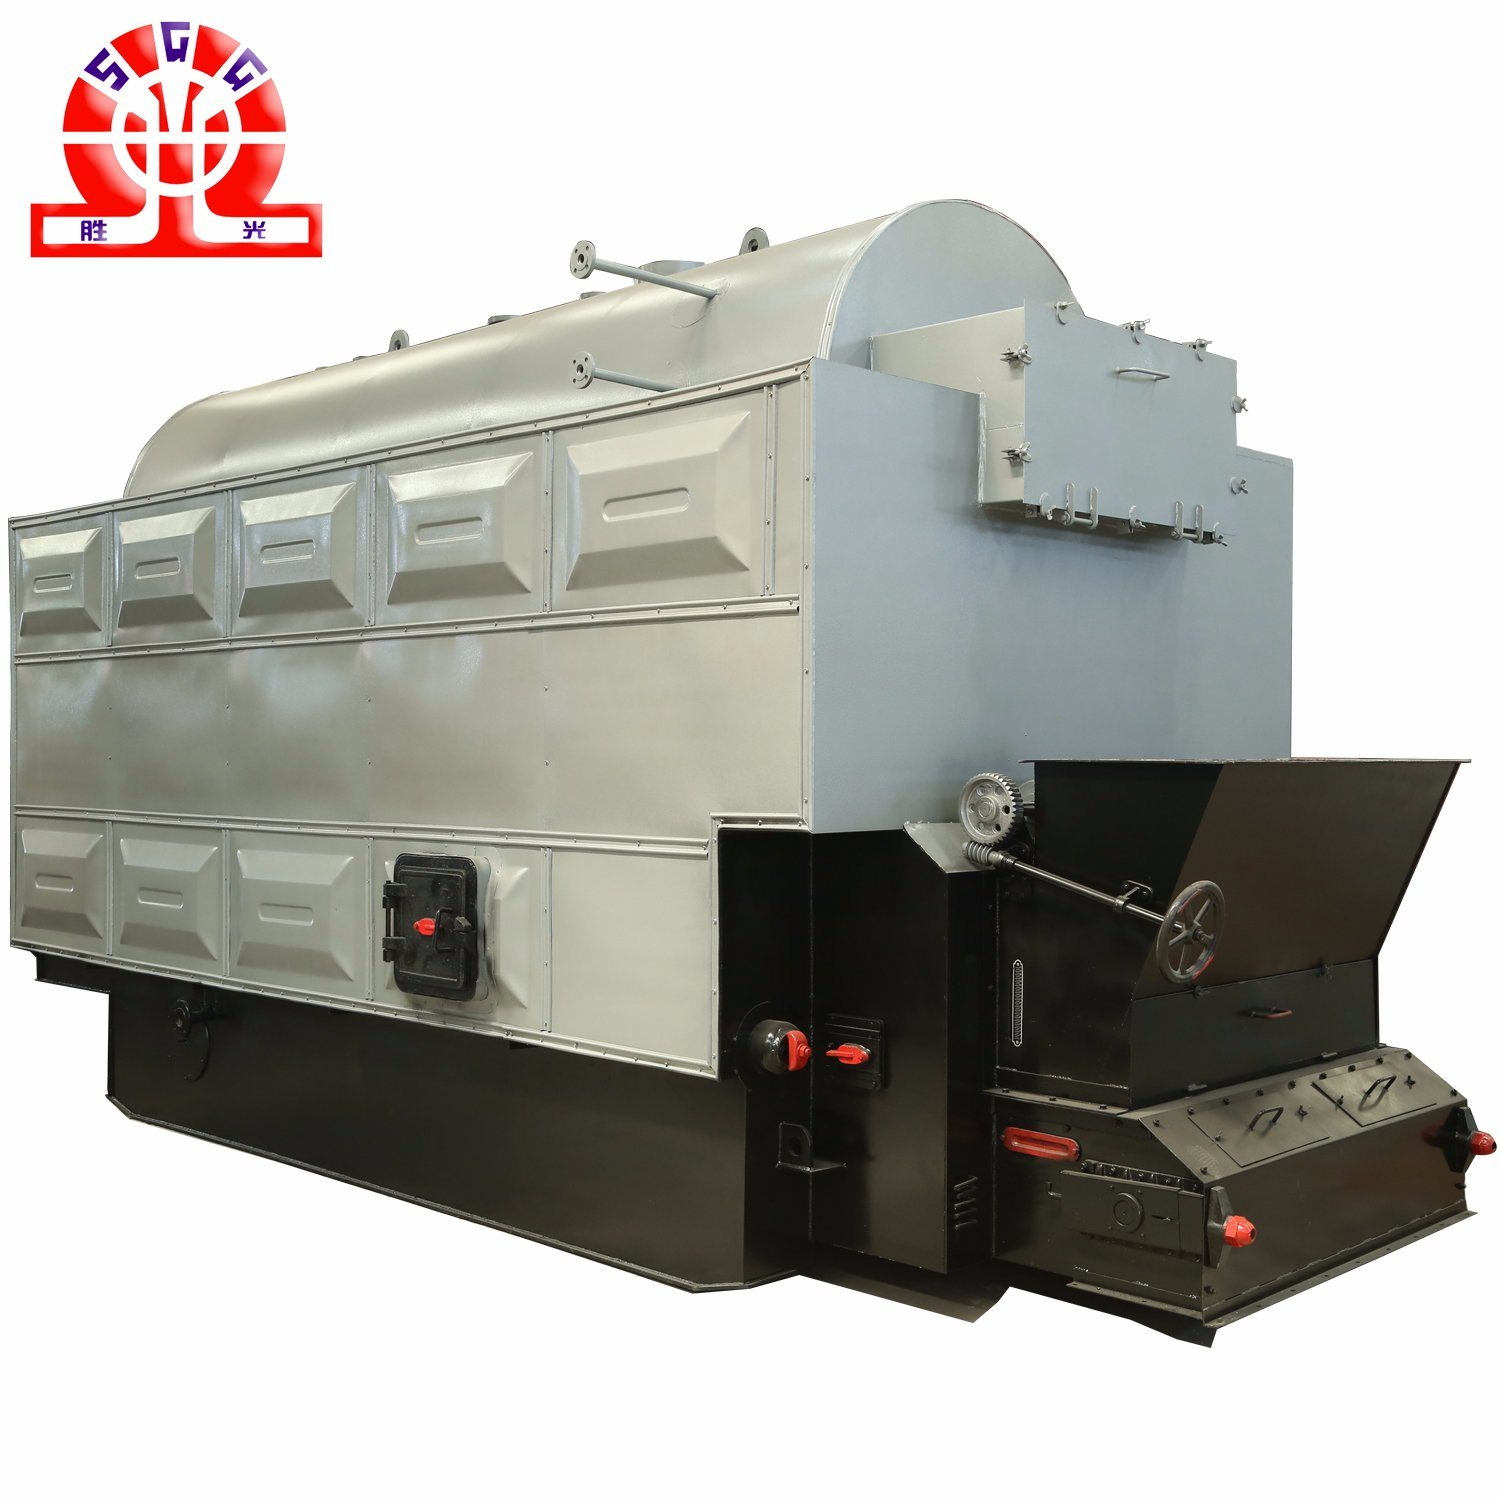 The best solid fuel boiler made in Russia 44